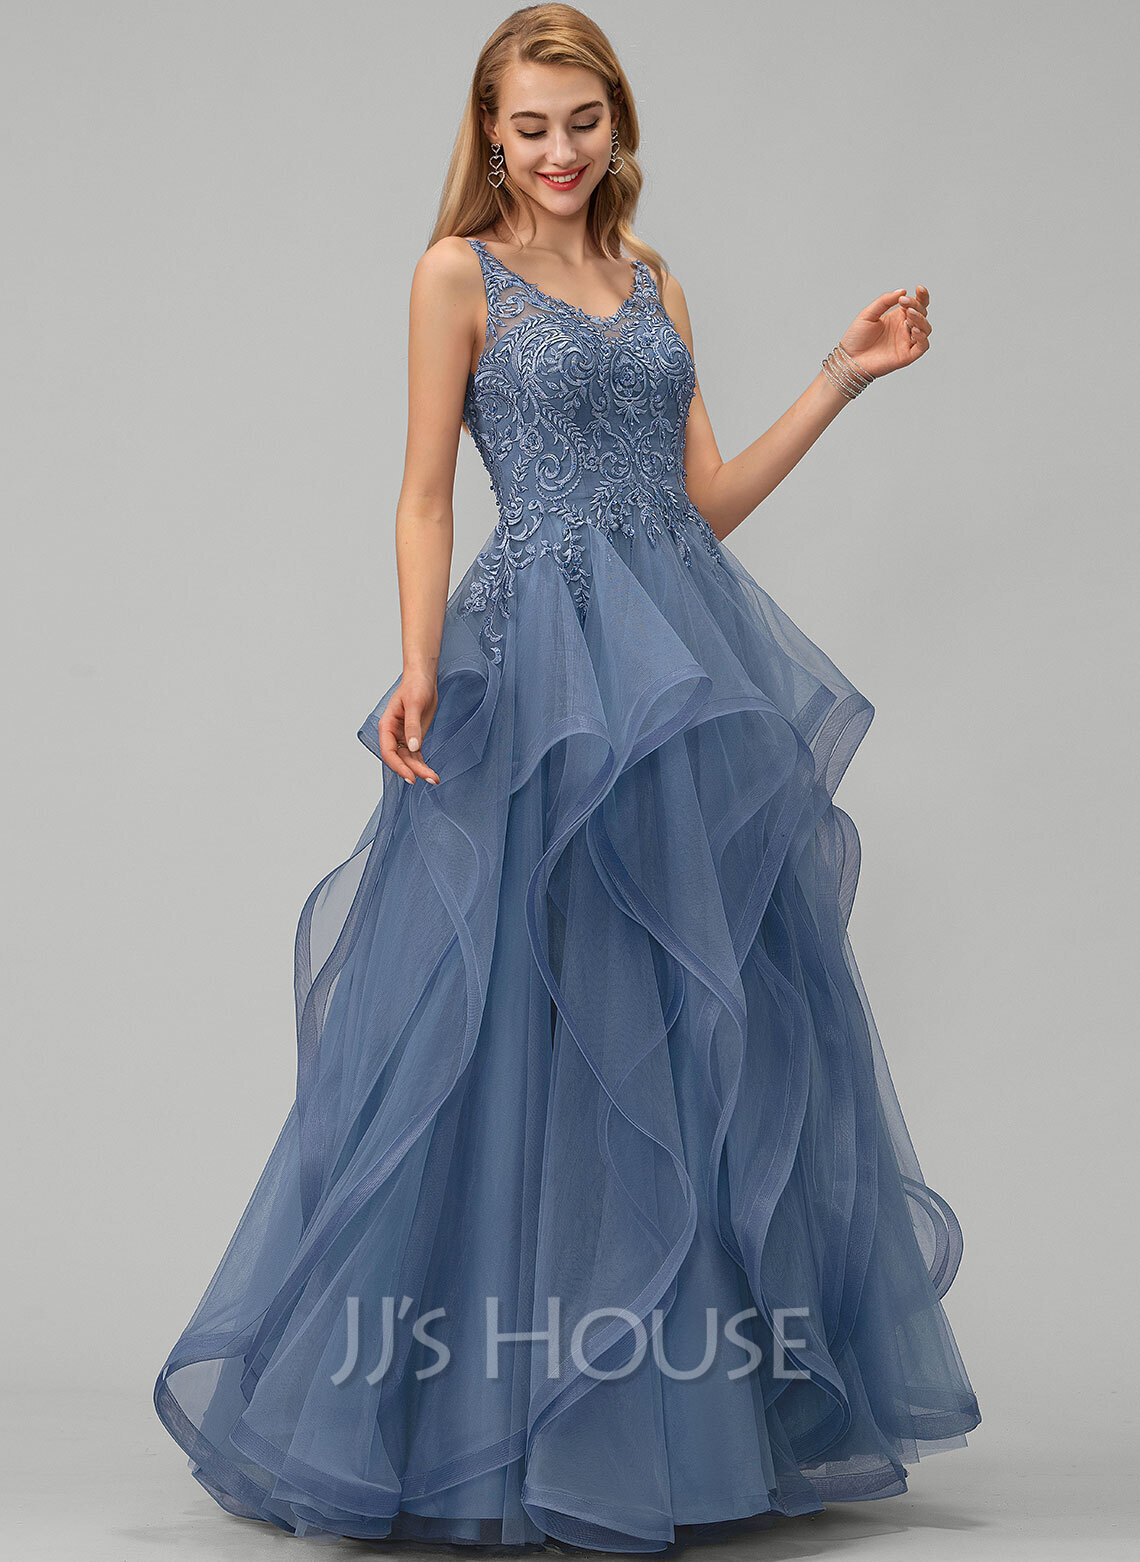 Ball-Gown/Princess V-neck Floor-Length Tulle Prom Dresses With Lace Beading Sequins